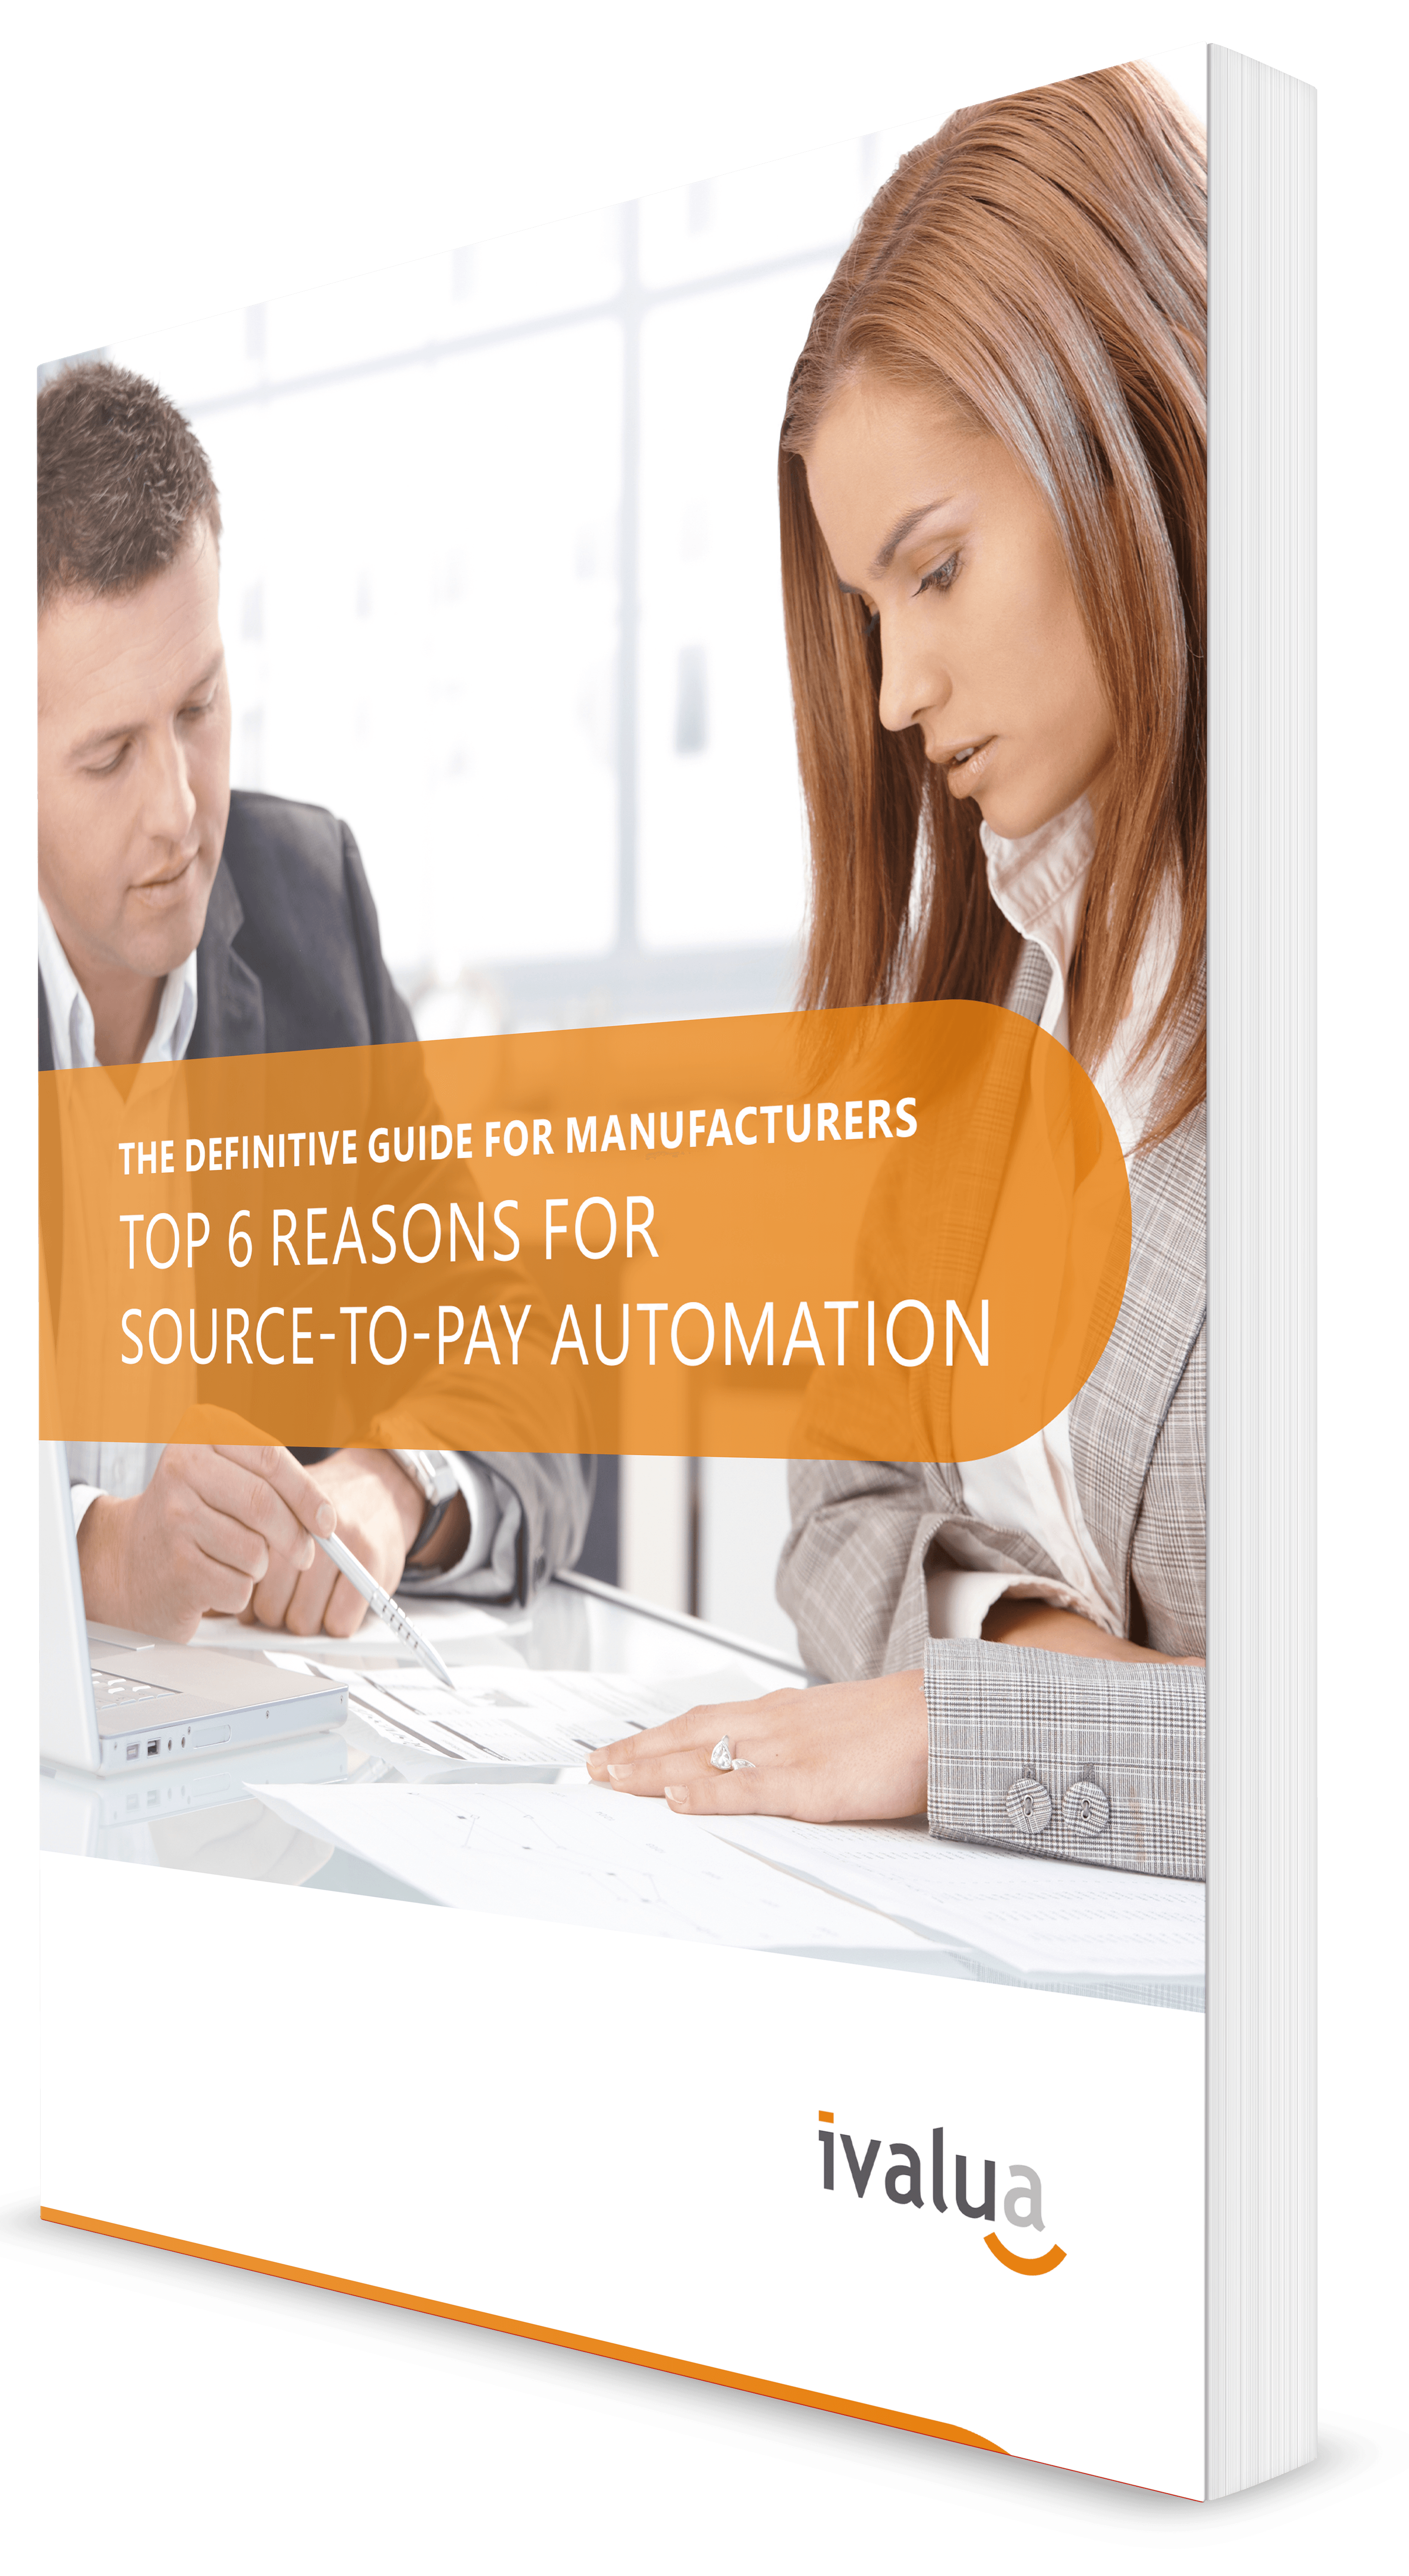 Top 6 reasons for Source-to-Pay Automation